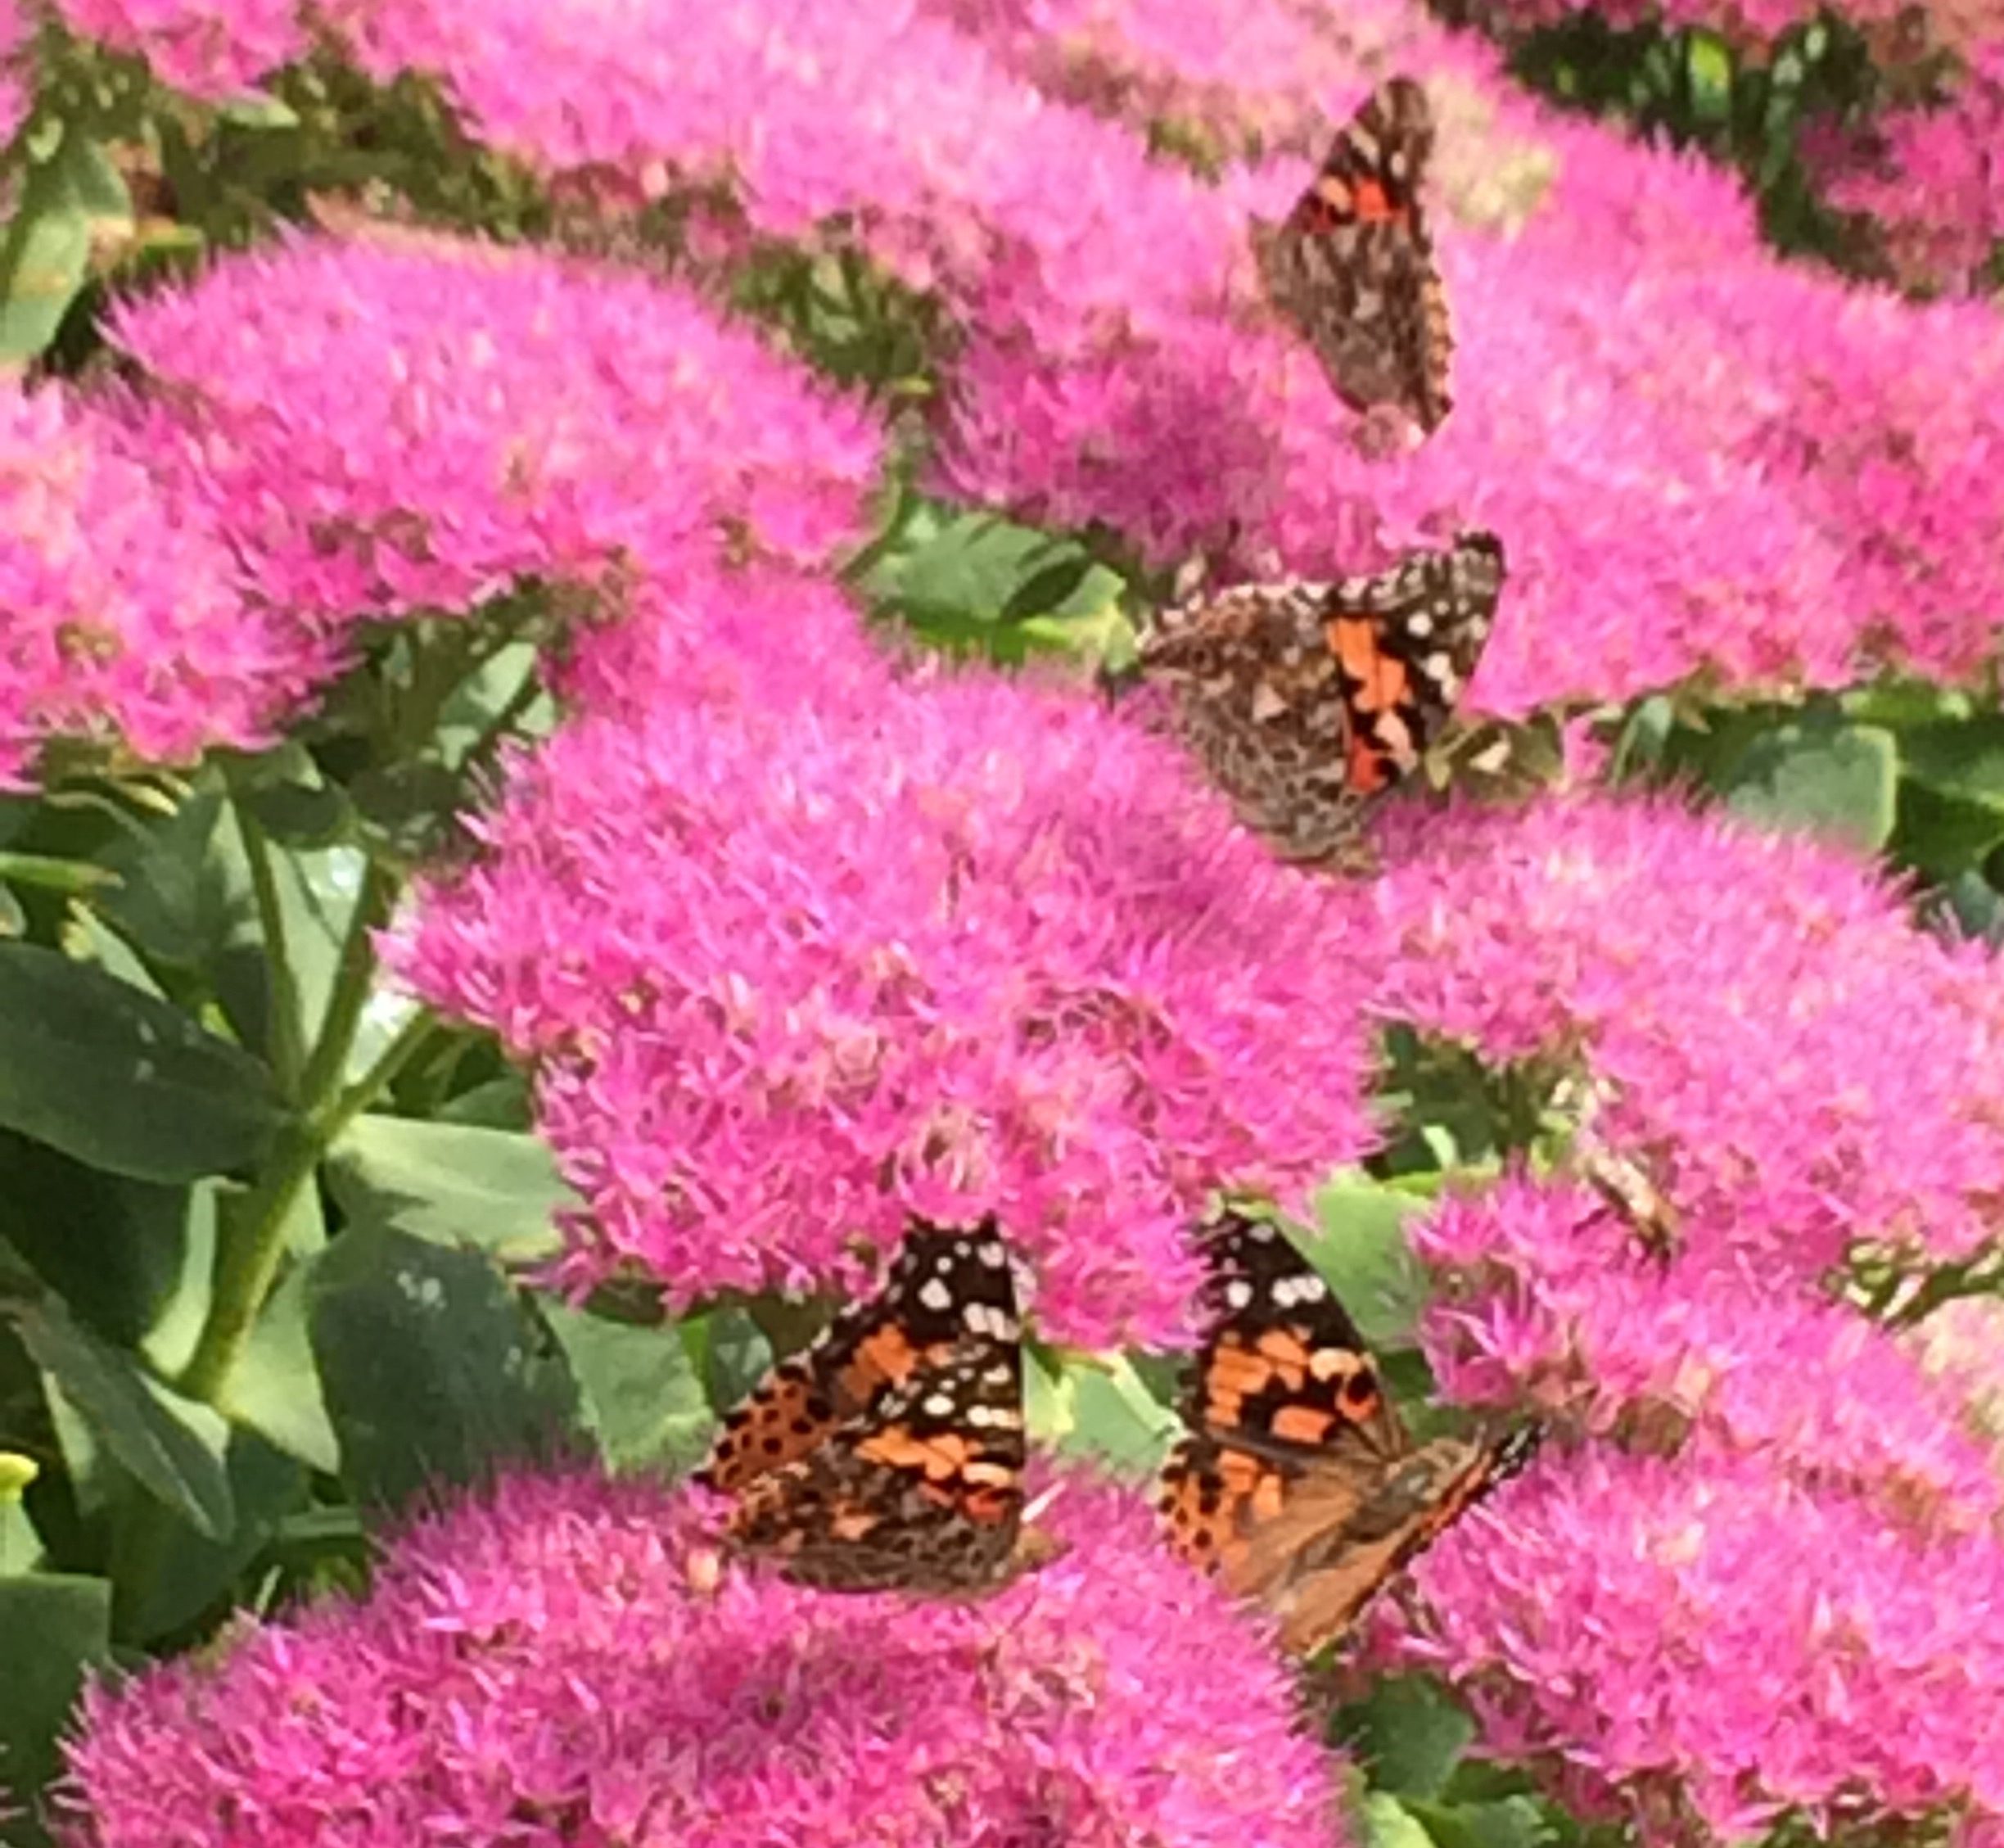 butterflies on pink flower